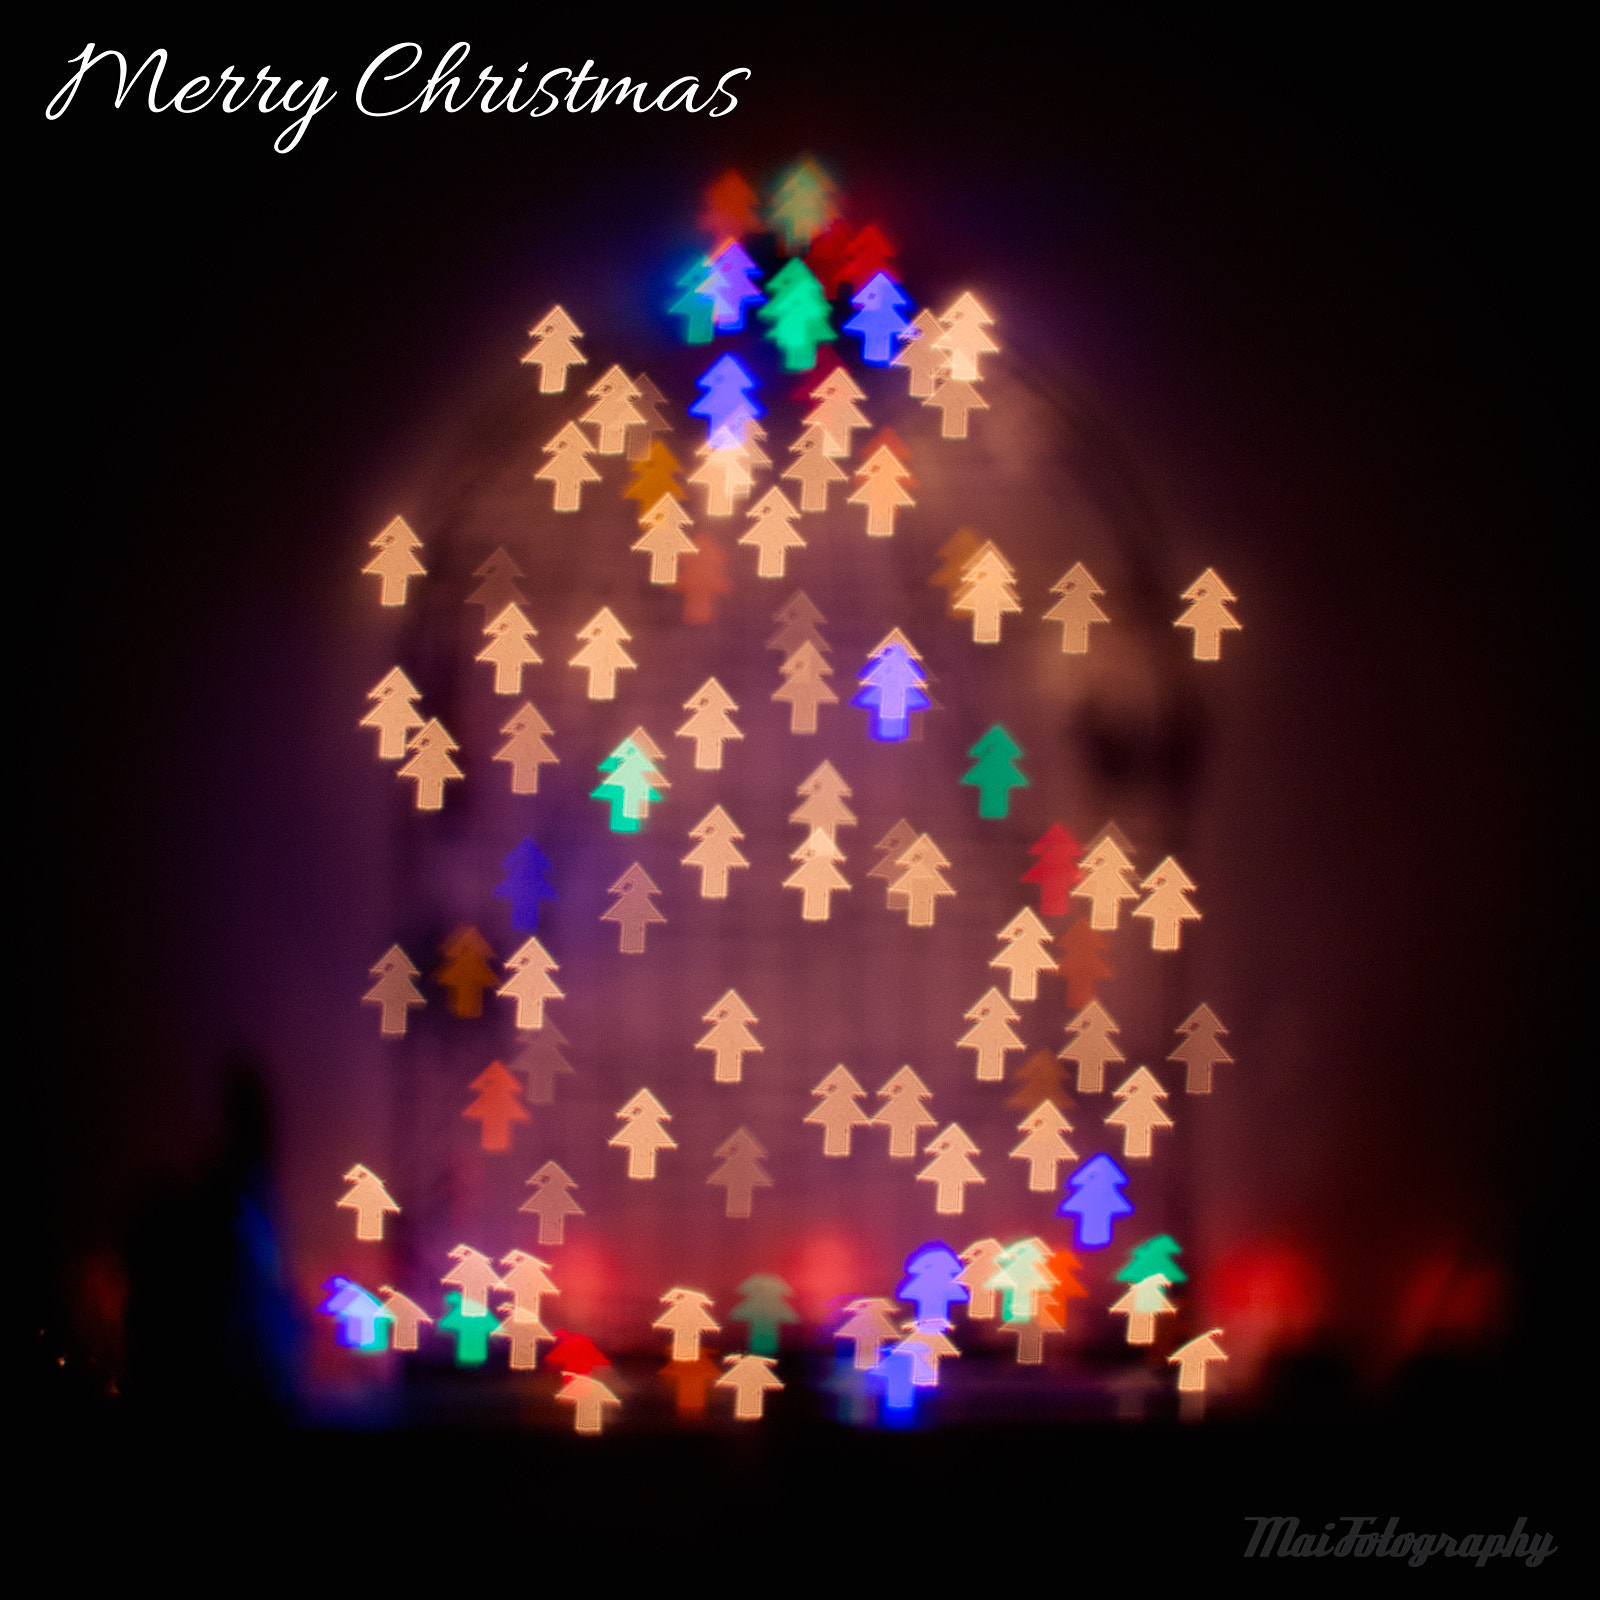 Photograph Merry Christmas by Mai Fotography on 500px